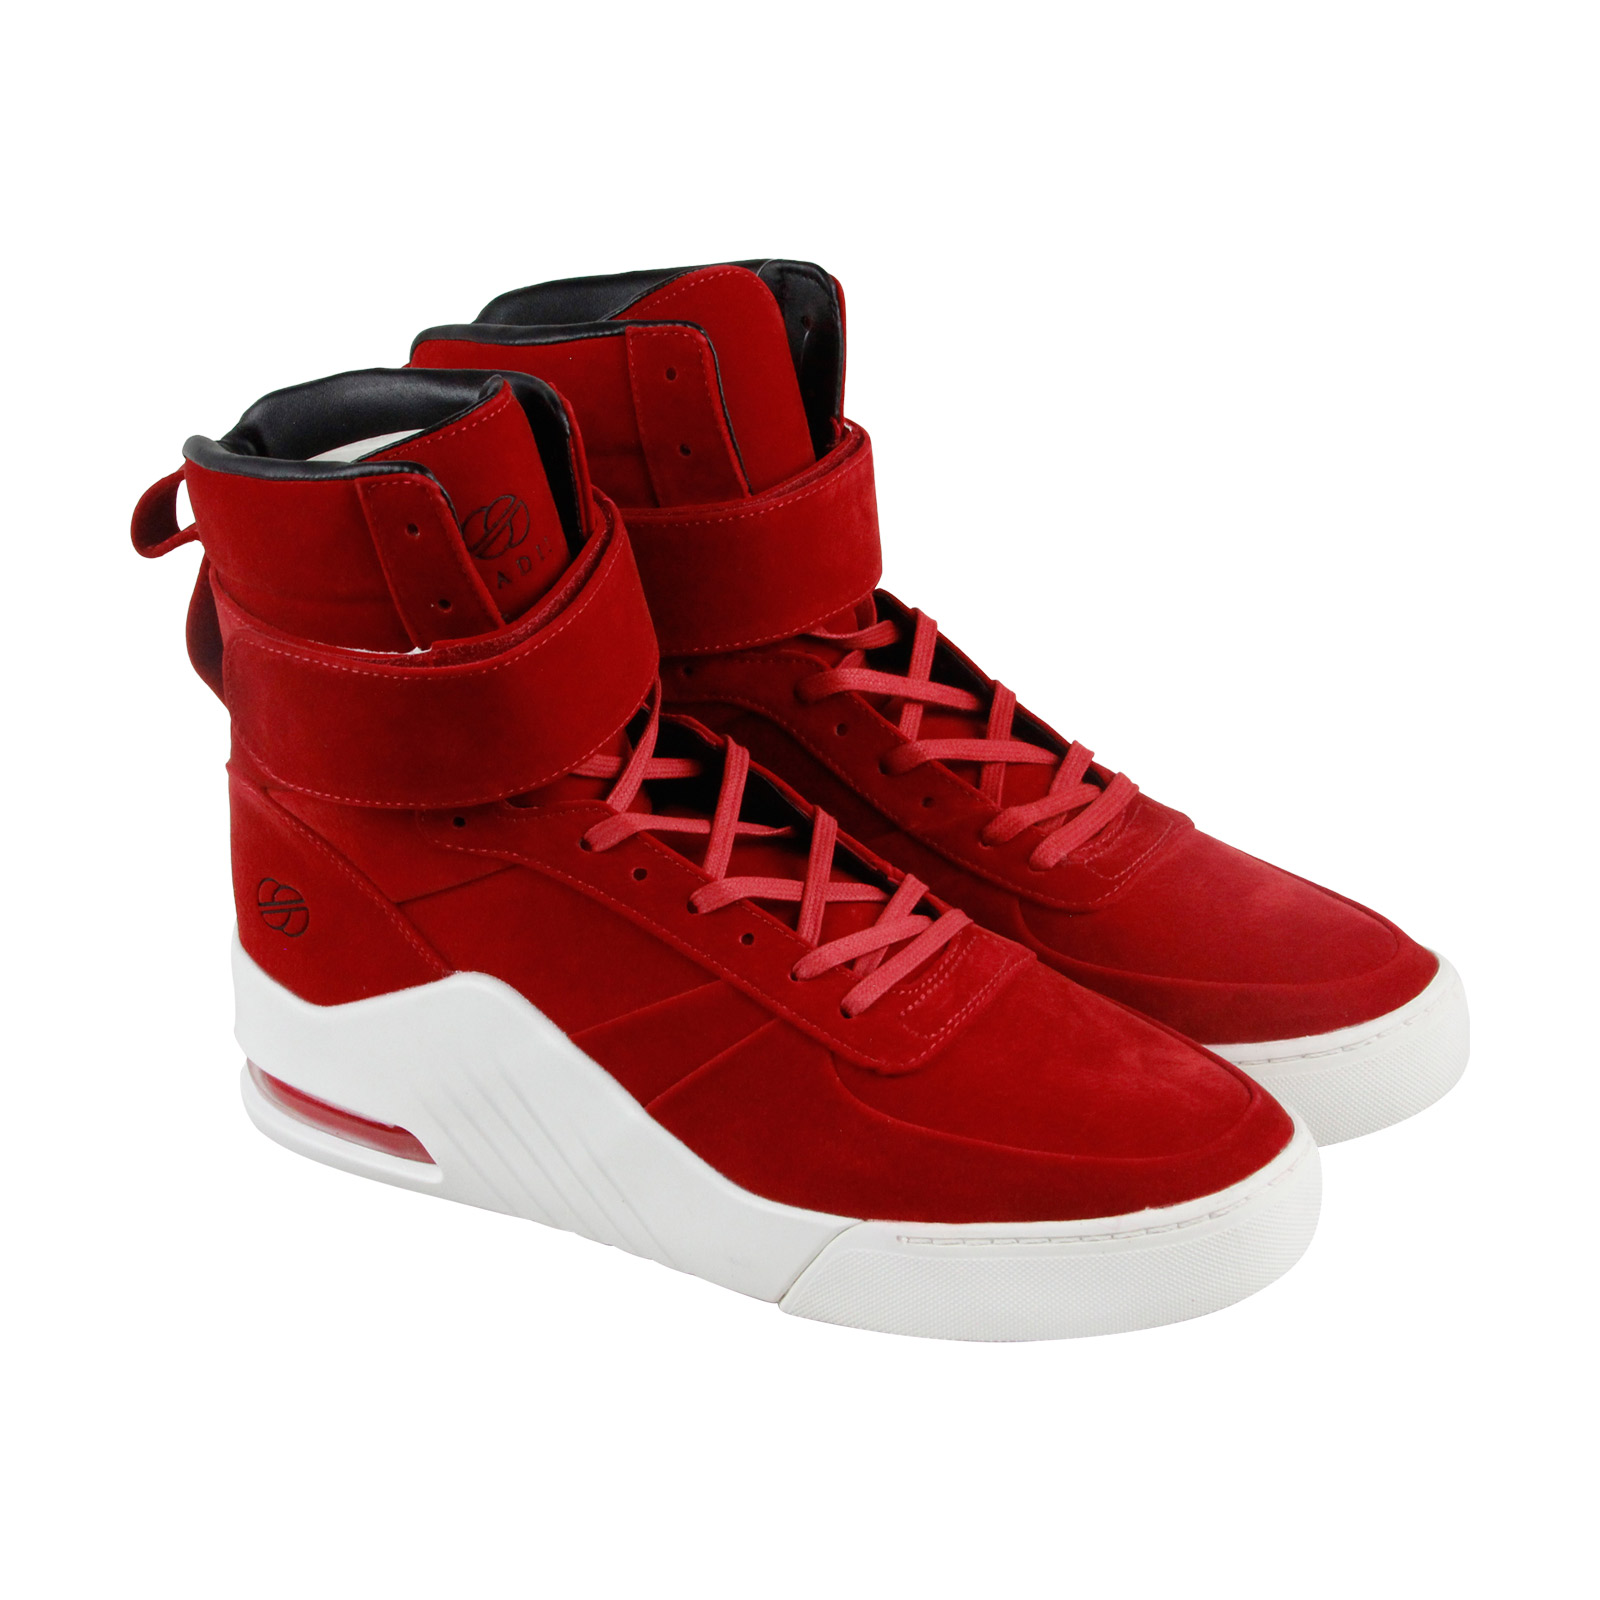 RADII Prism Dolphin Ice   King Casuals